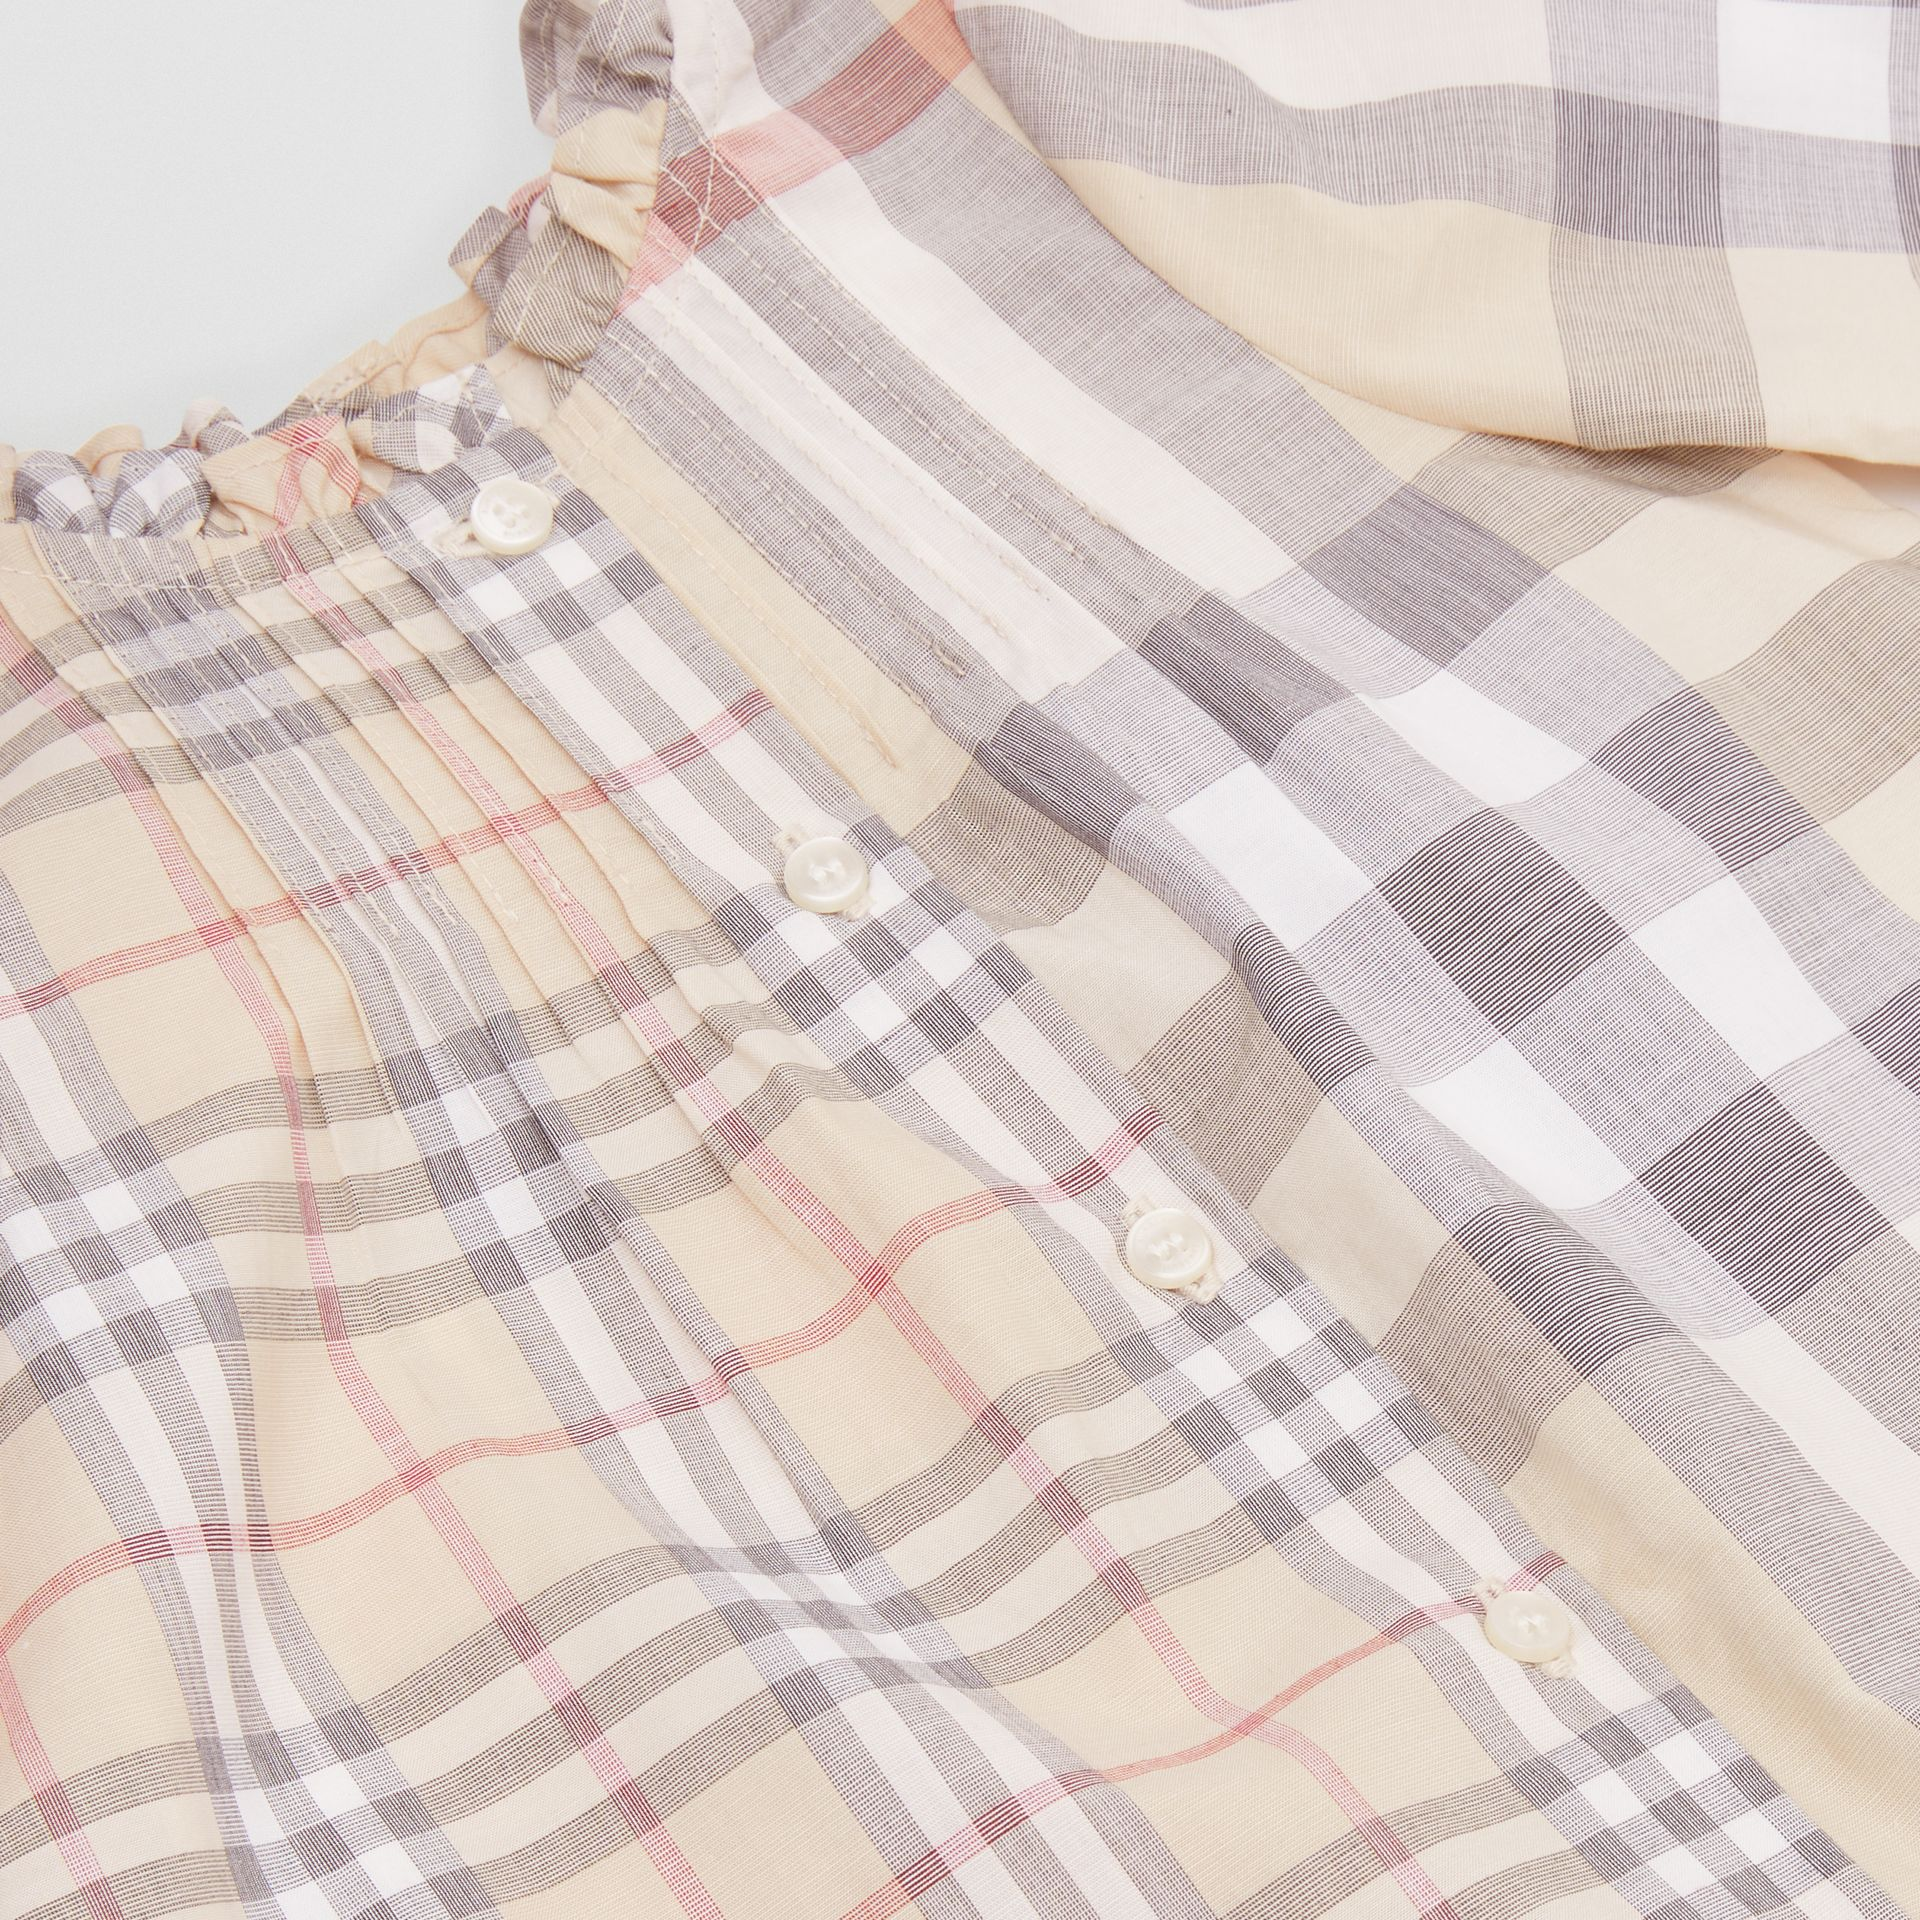 Robe et bloomer en coton check (Stone Pâle) - Enfant | Burberry - photo de la galerie 1